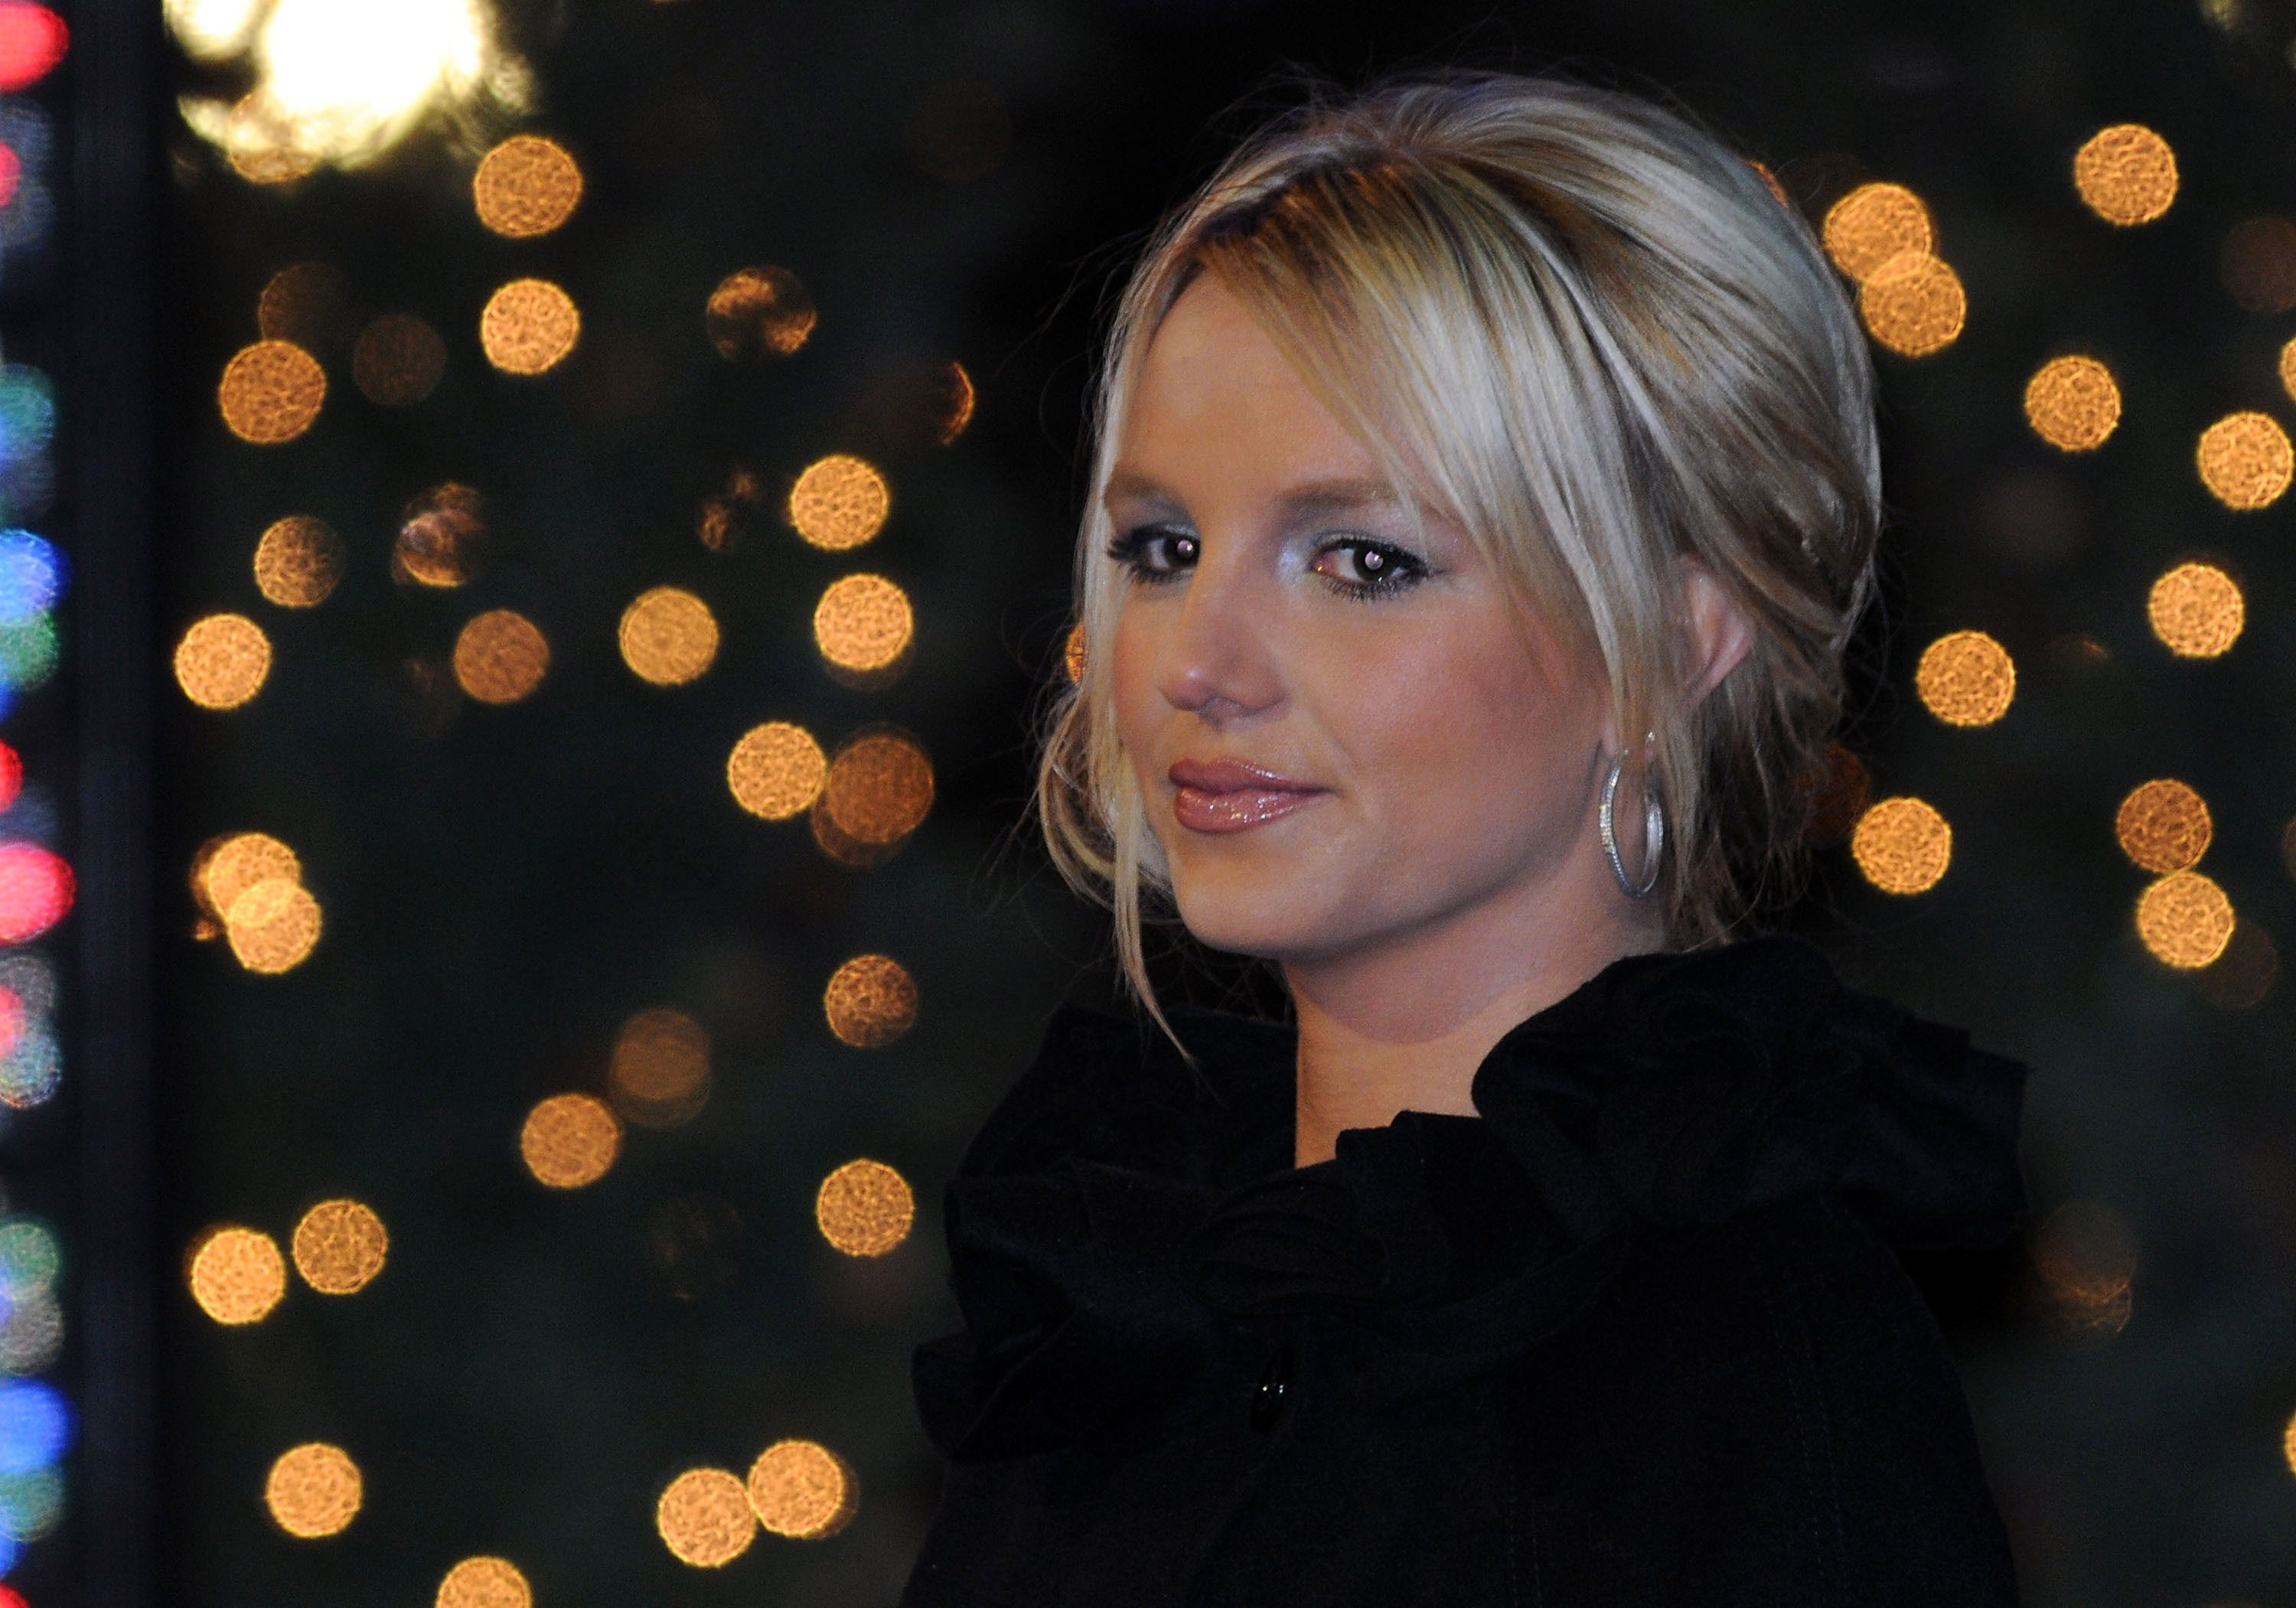 People Are Devastated by Britney Spears' Revelations About Her Conservatorship